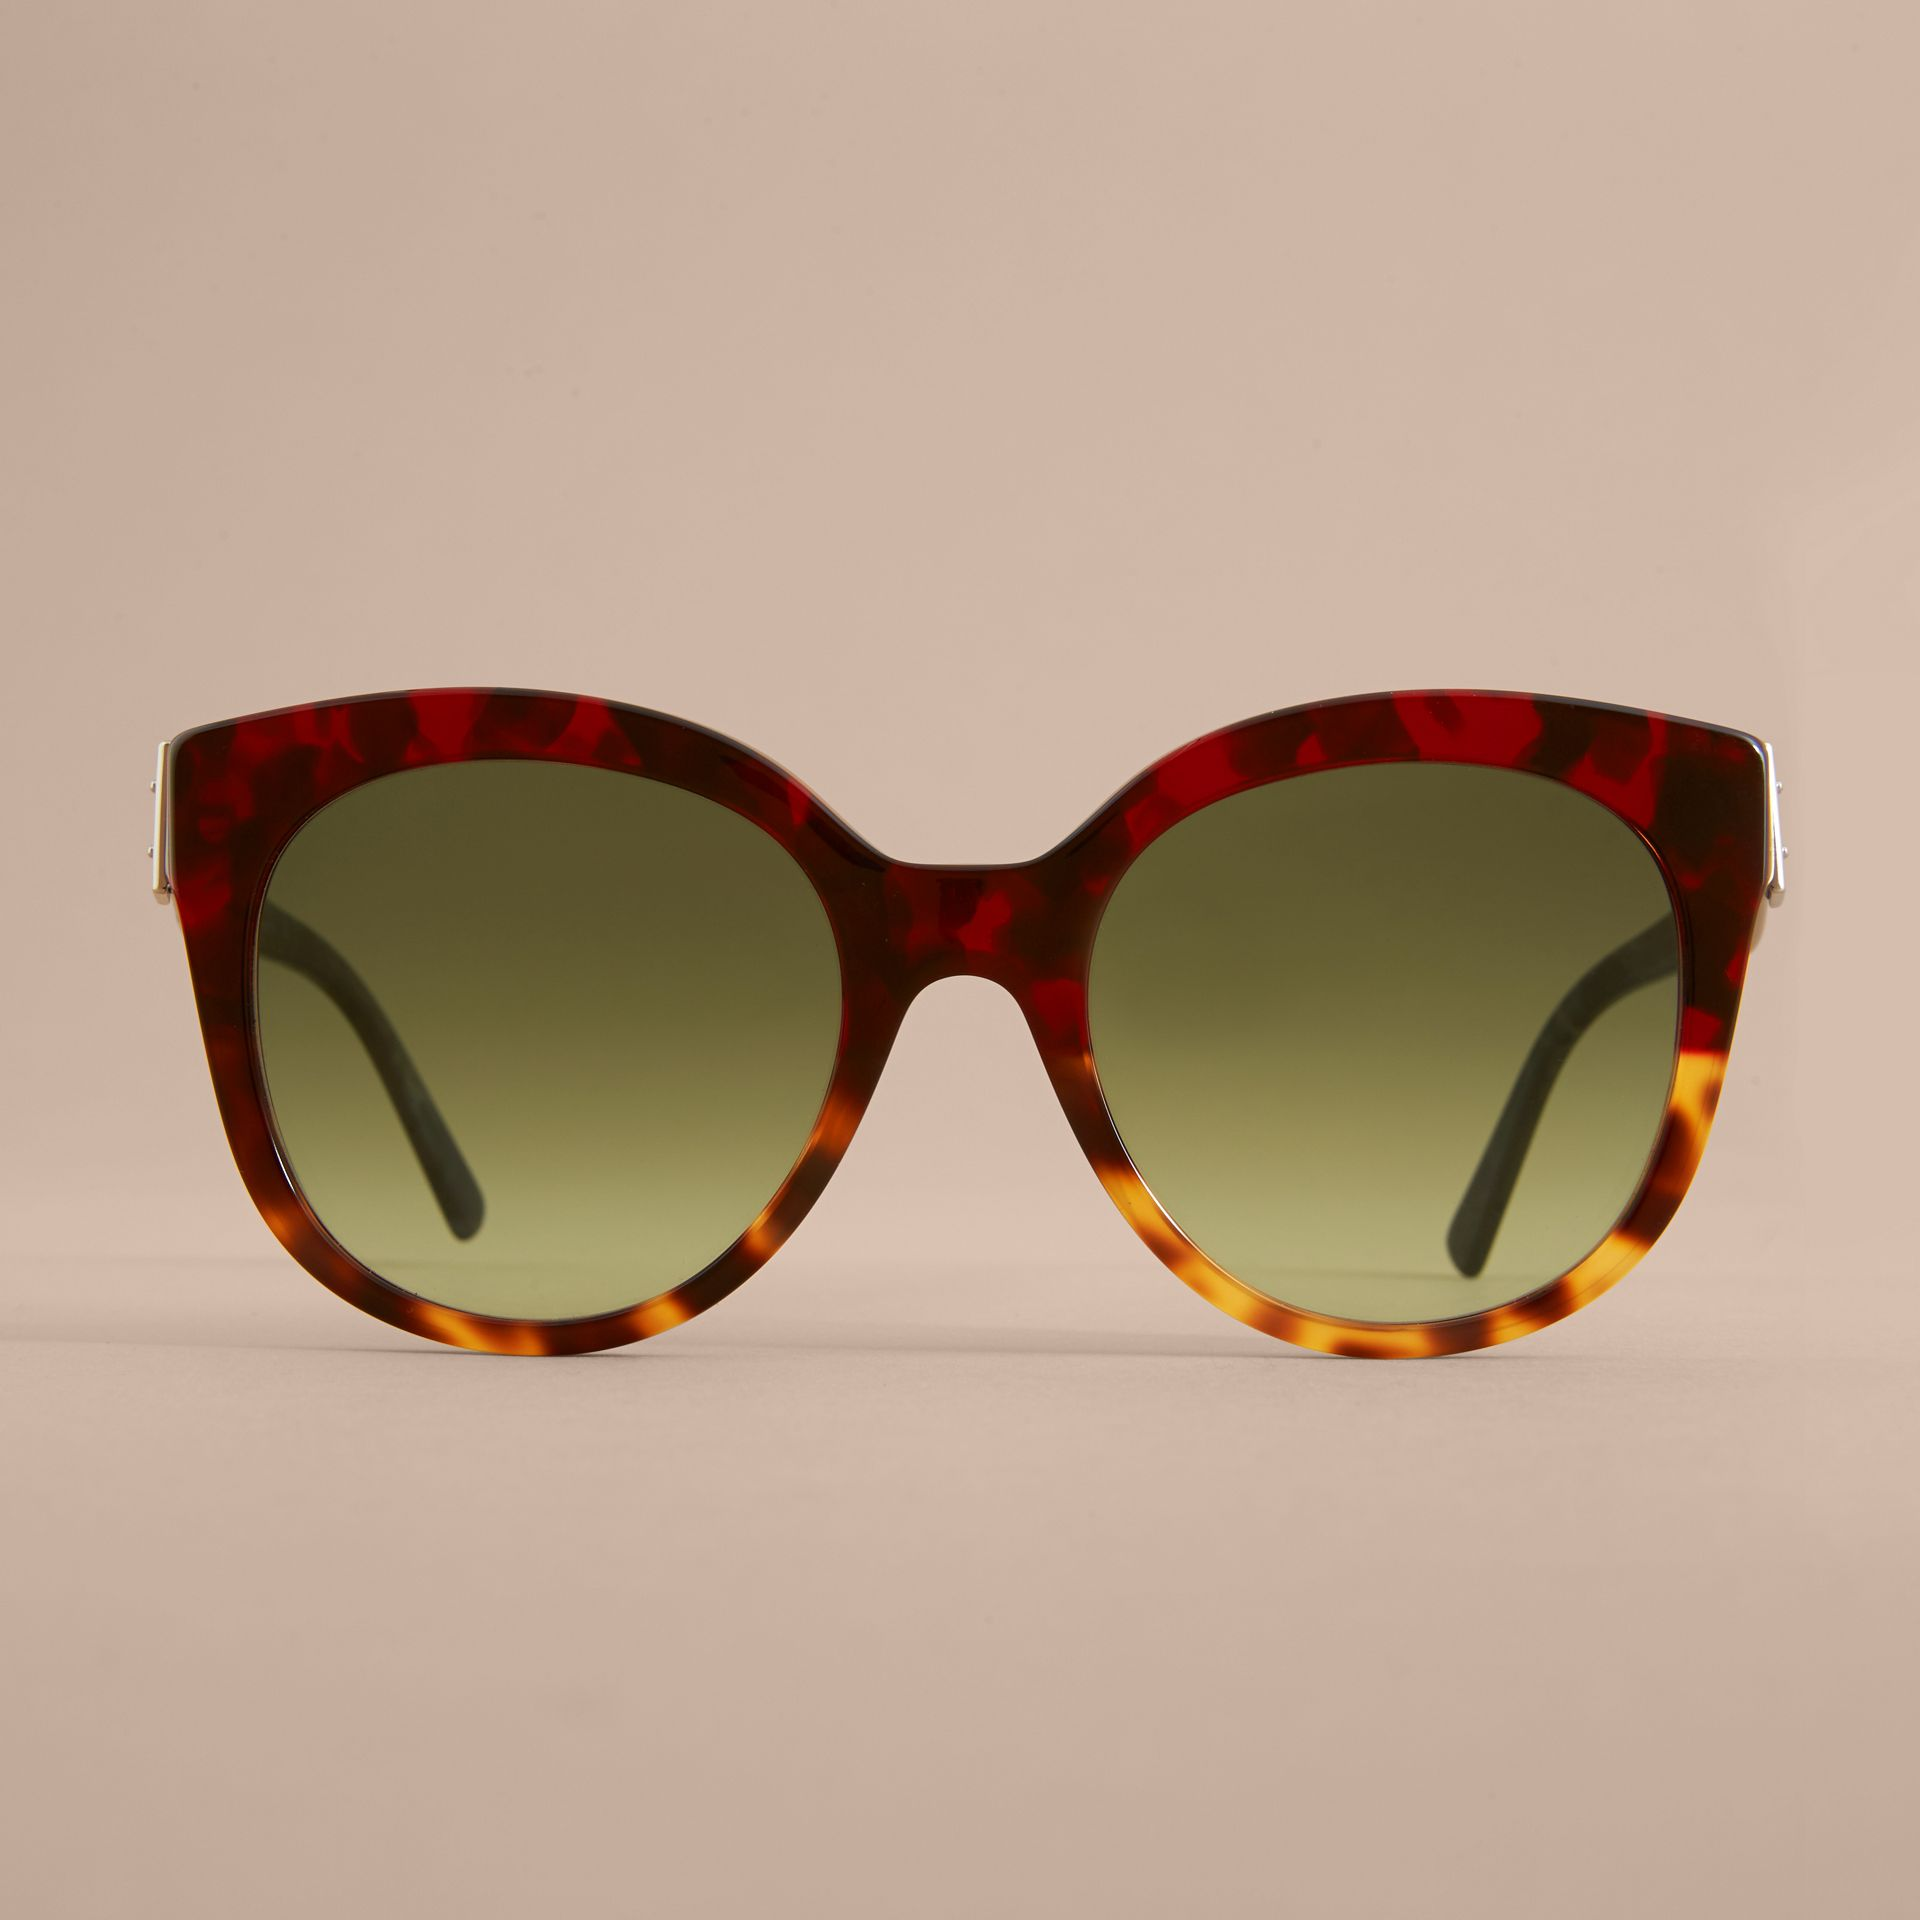 Buckle Detail Cat-eye Frame Sunglasses in Amber Yellow - Women | Burberry Australia - gallery image 2